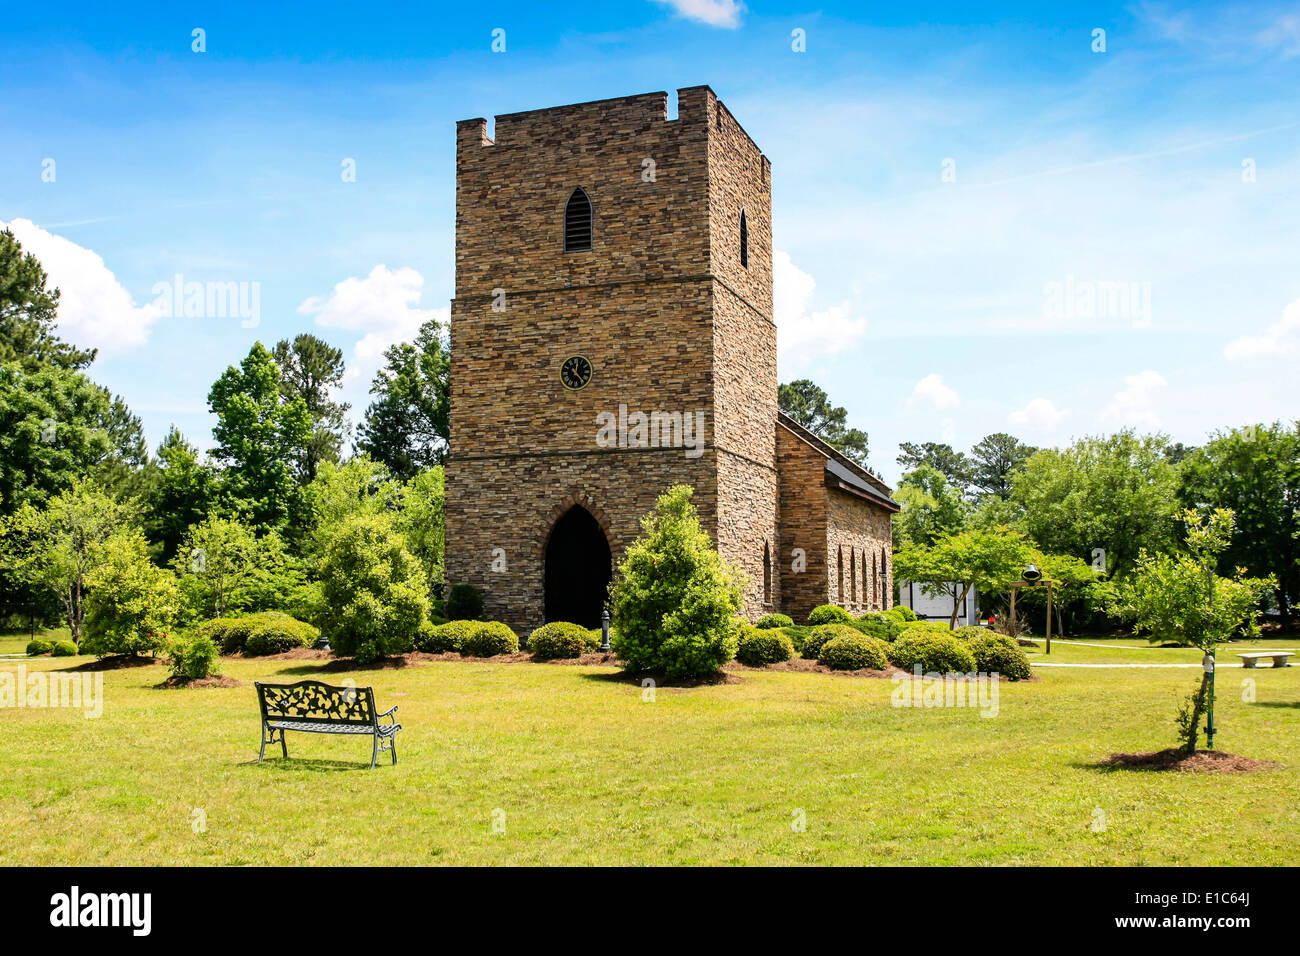 Chapel of the Fallen Eagles. Built to resemble an English Chapel at the Mighty 8th AF Museum at Pooler GA - Stock Image